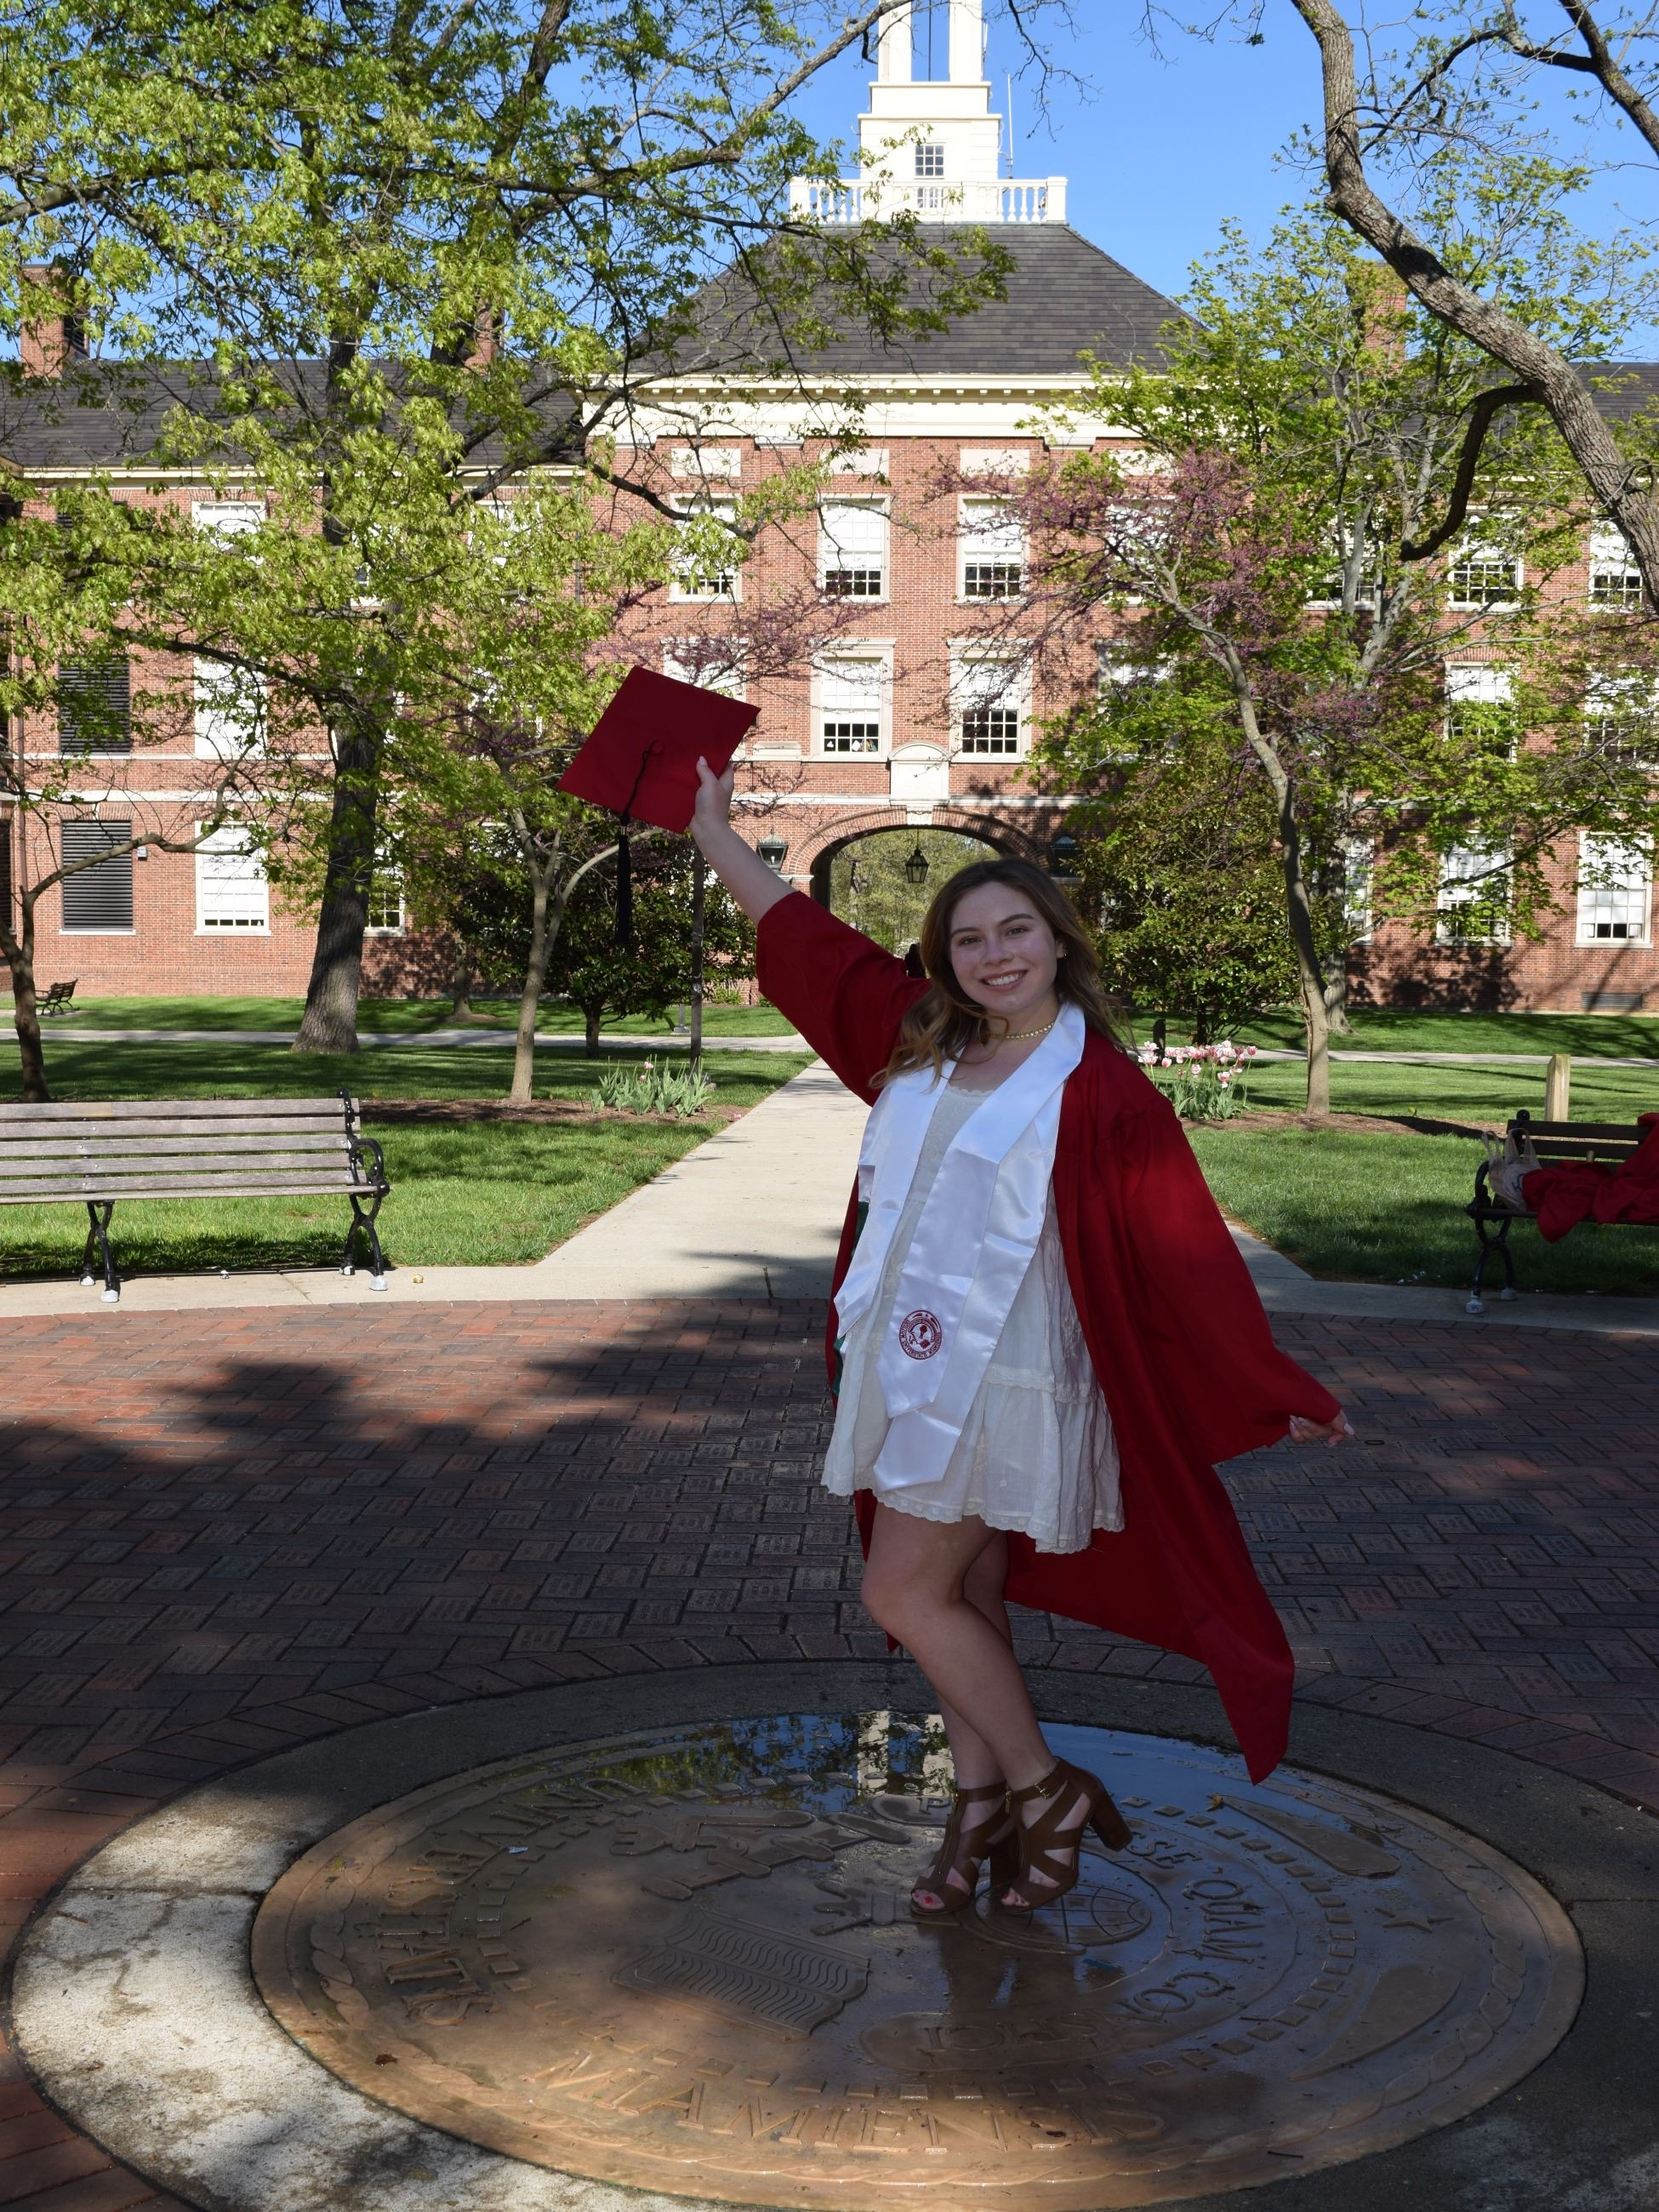 Juliana Livieri- Graduated from Miami University